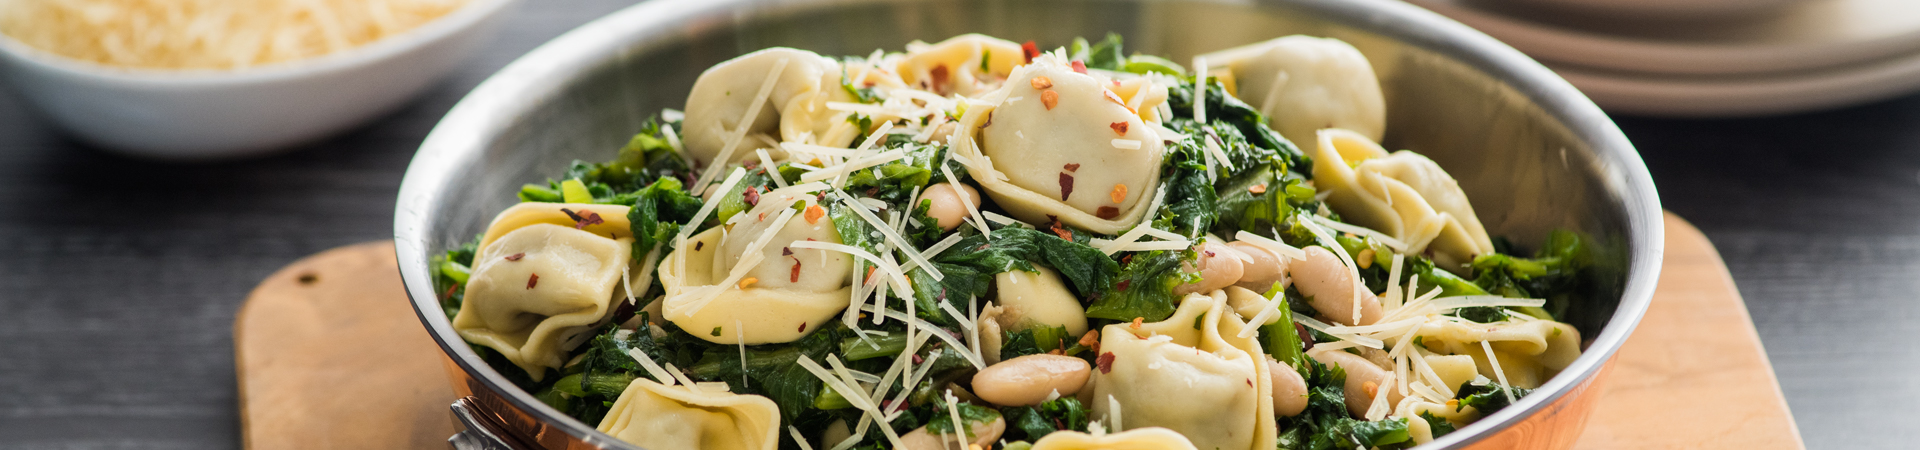 Tortelloni with White Beans and Escarole